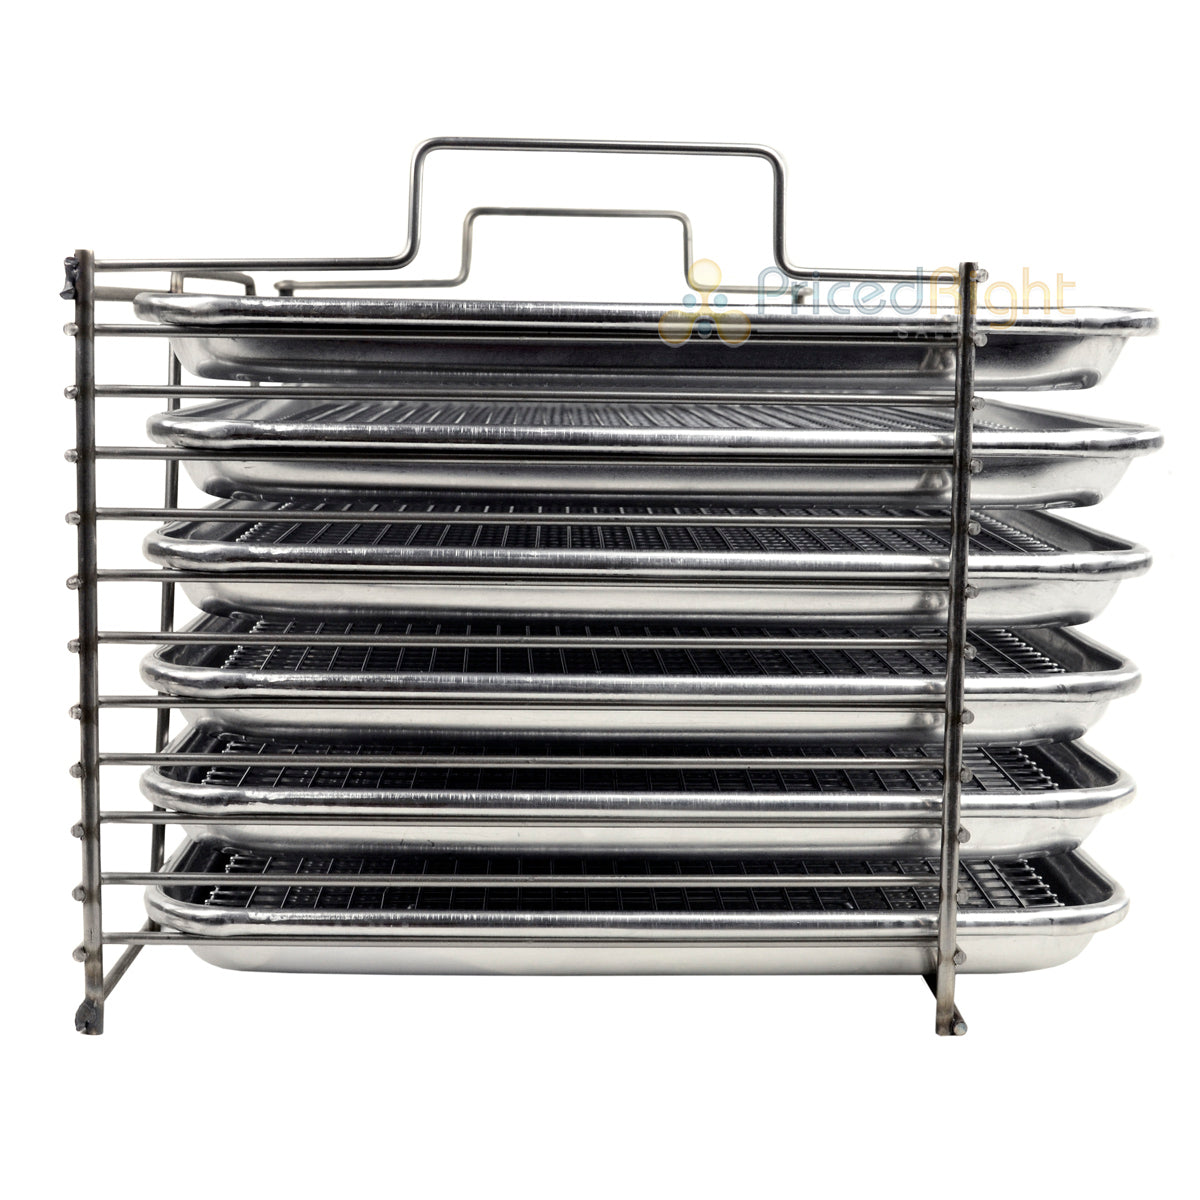 Bull Rack Grill Tray System BR6 Ultimate Package Grilling More Space Smoke Dry